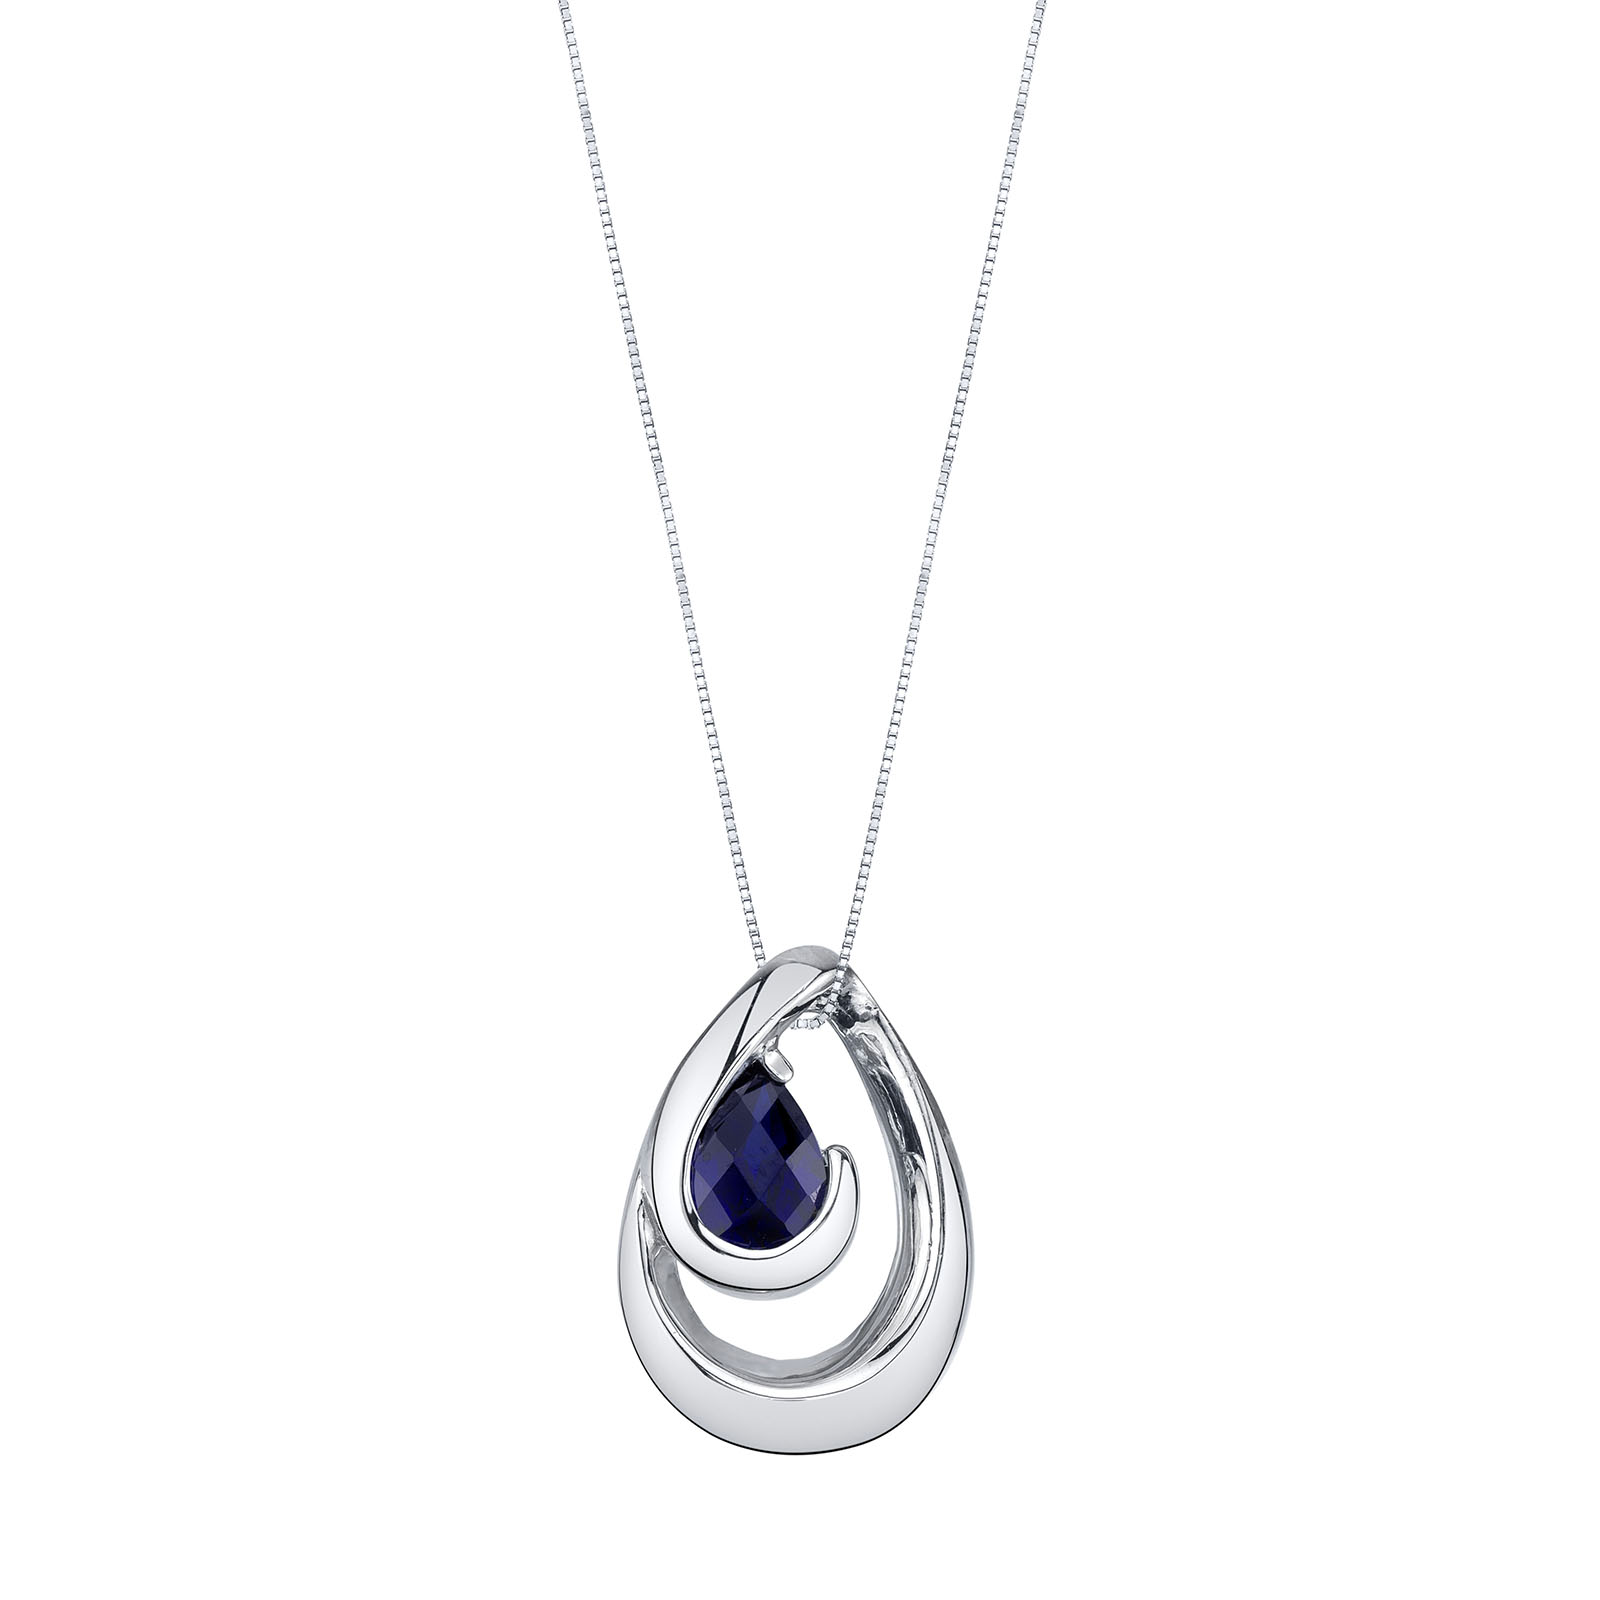 Sapphire Wave Pendant Necklace in Sterling Silver